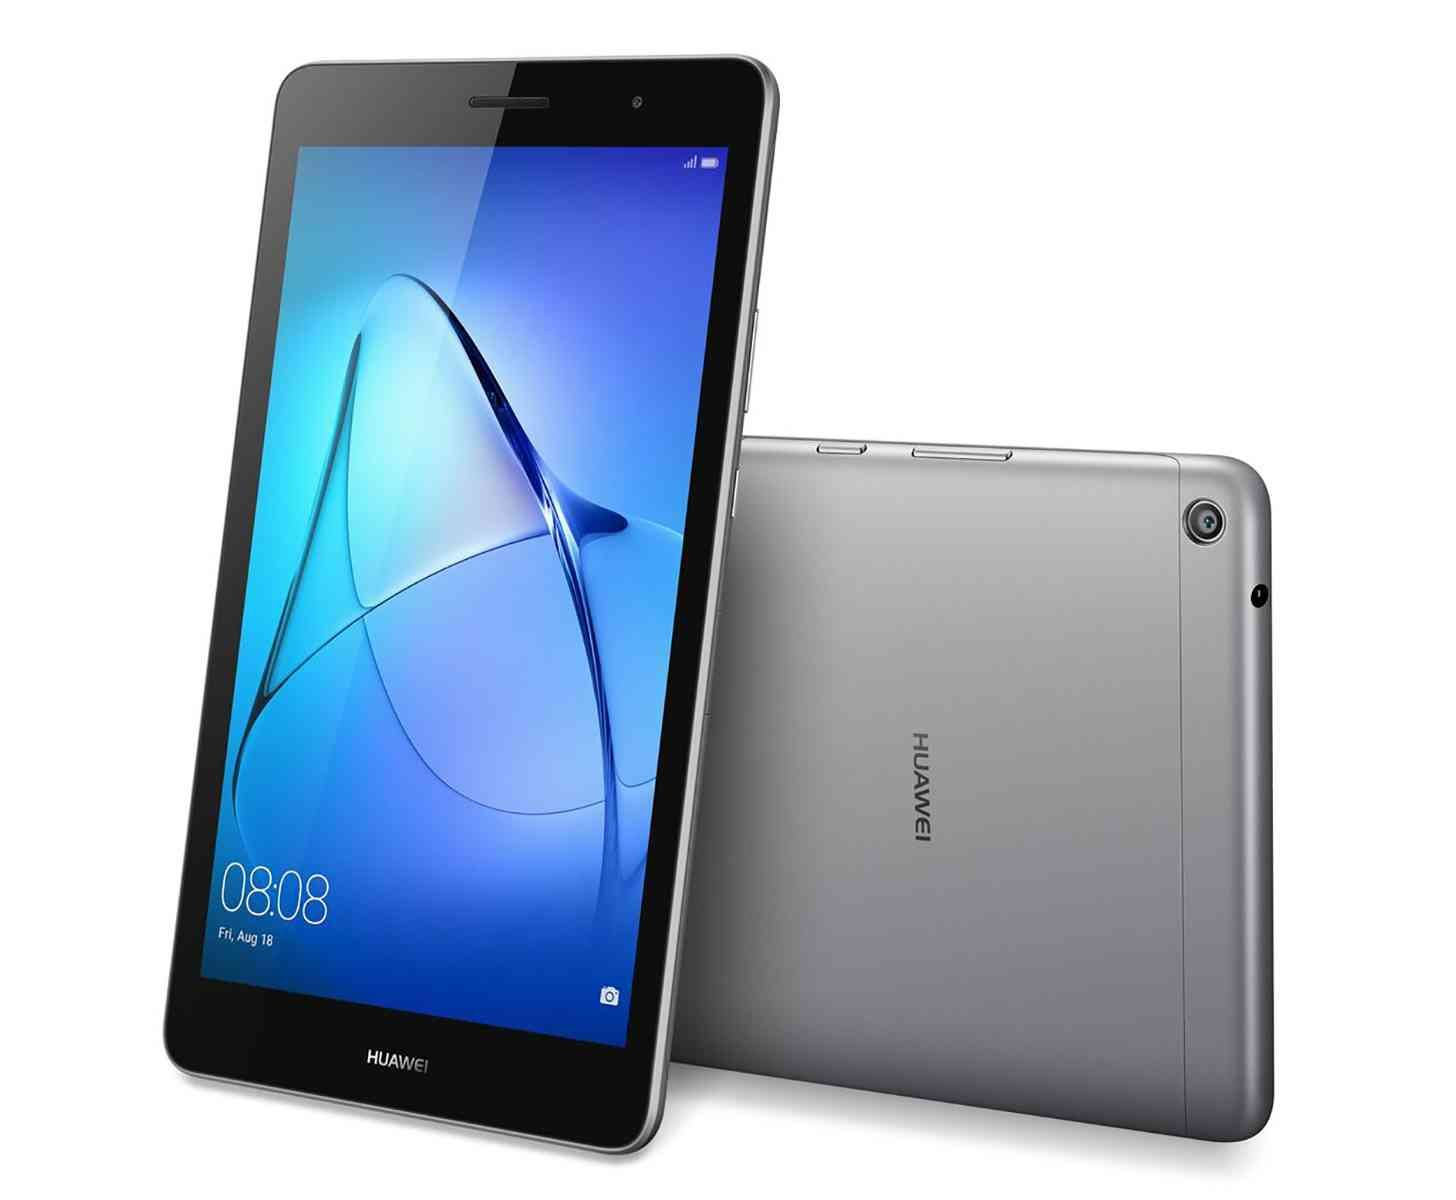 Huawei Launches Four New Android Tablets In The U S Huawei Android Tablets Tablet